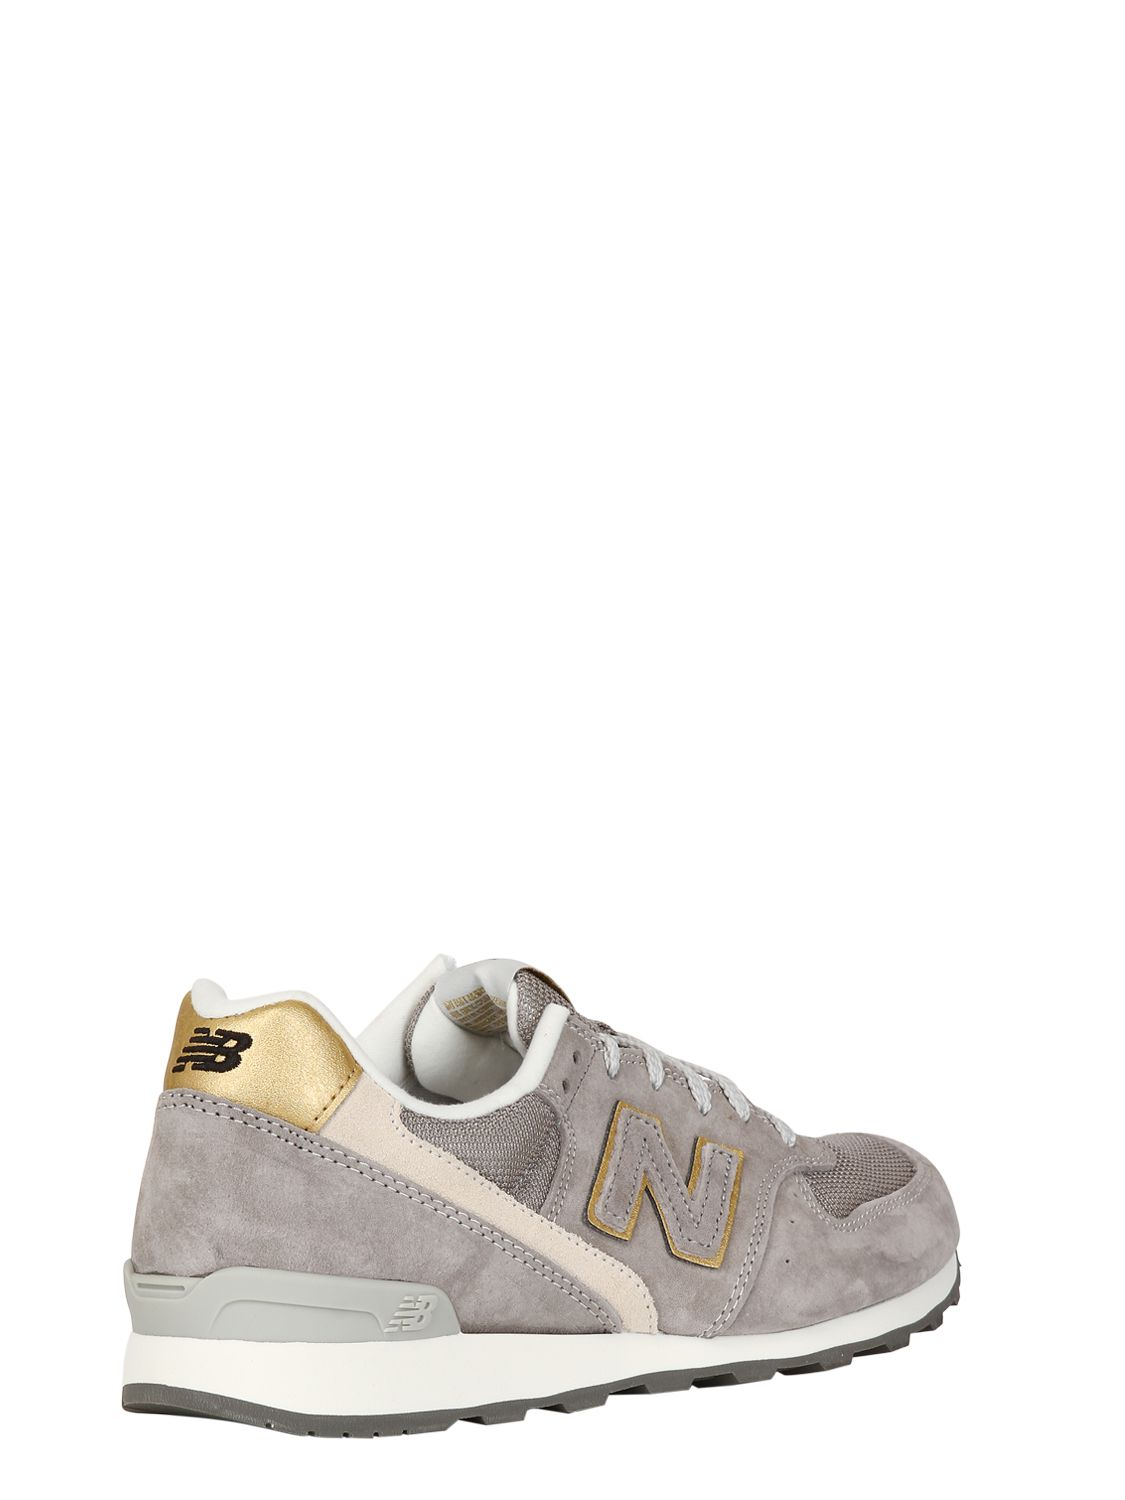 shop new balance 996 grey suede and mesh trainers e0020 b6159